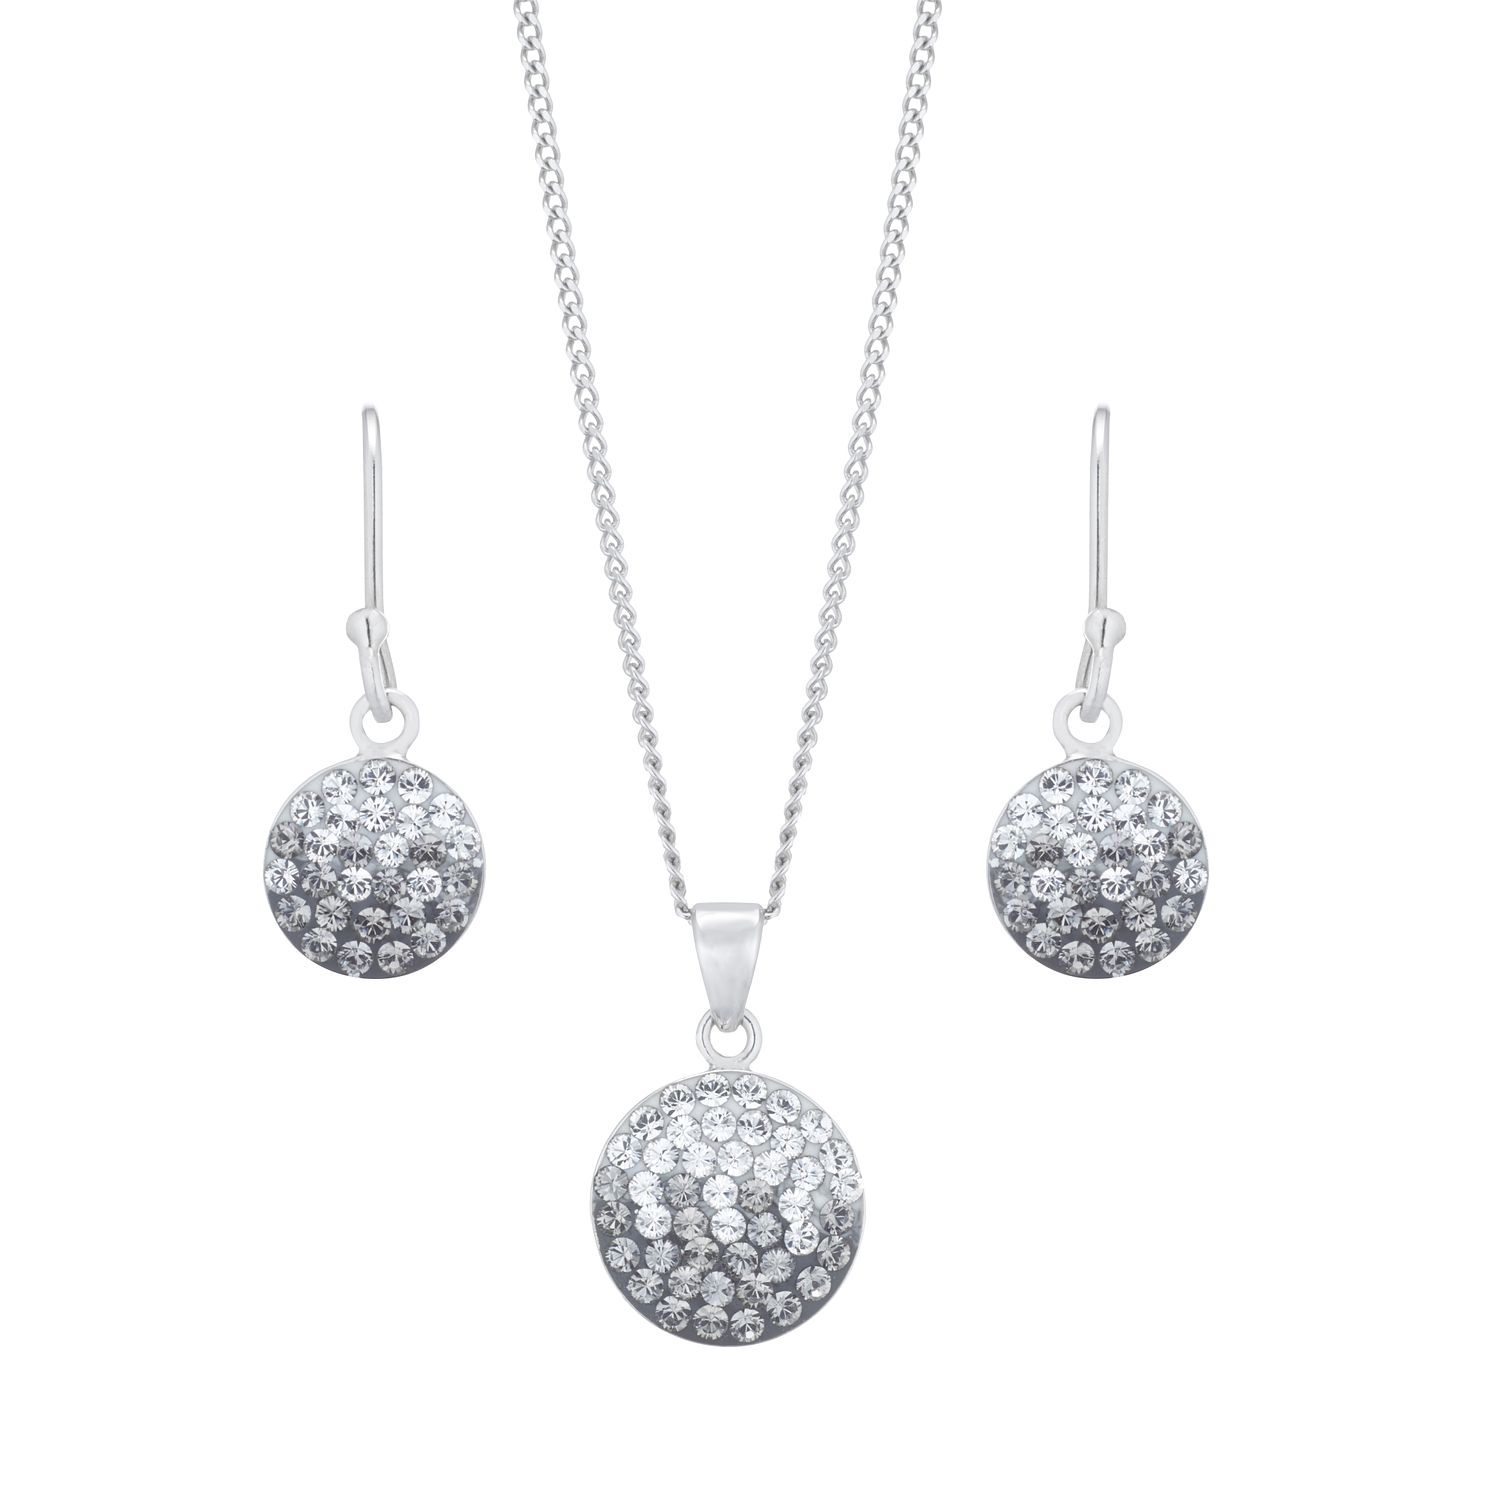 Evoke Silver Rhodium Plated Crystal Earrings & Pendant Set - Product number 5123550